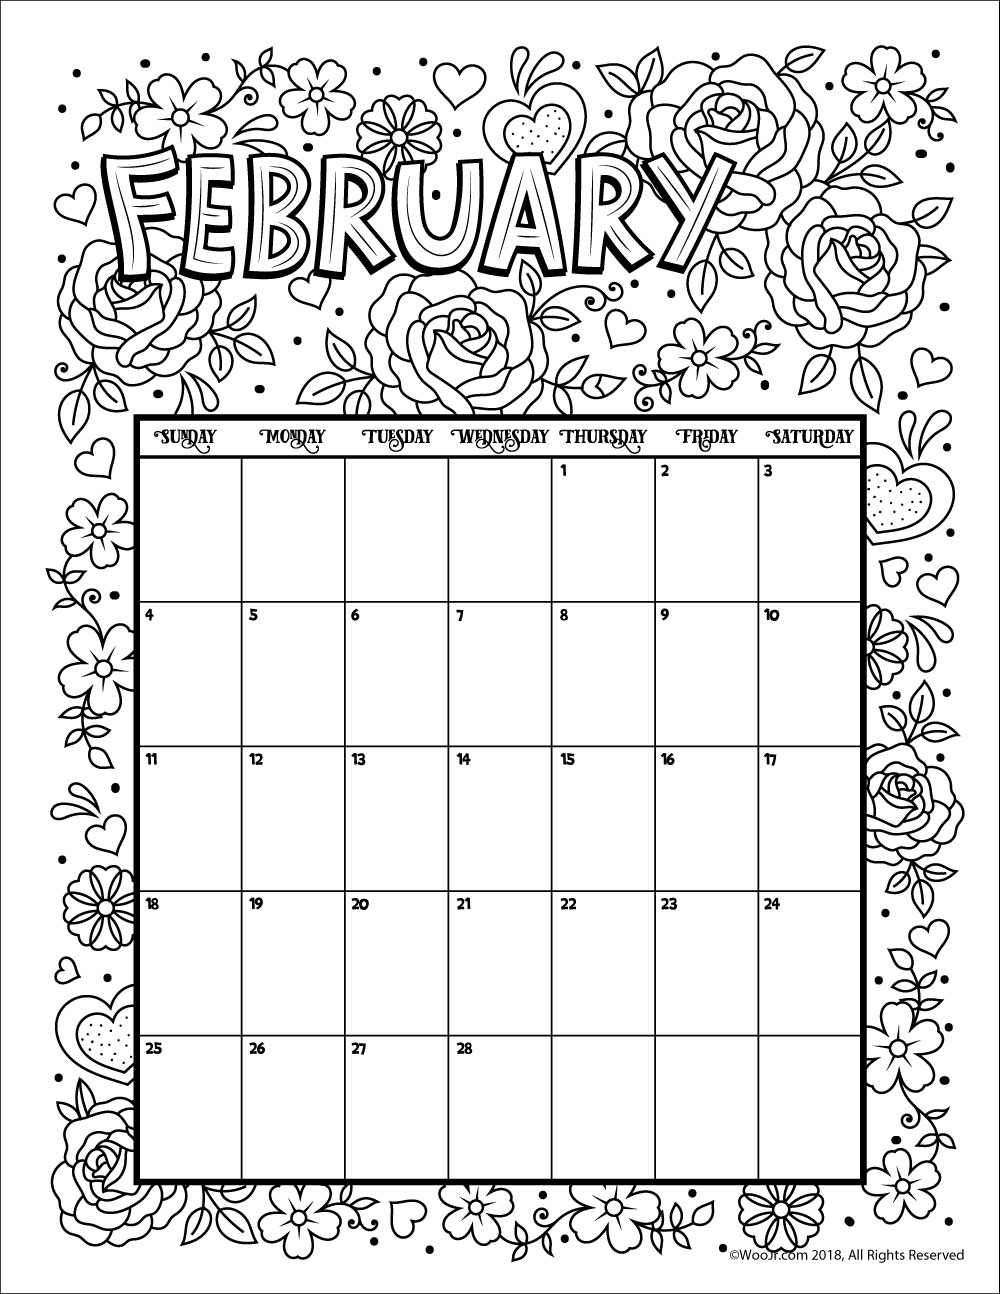 Printable Coloring Calendar For 2020 (And 2019!) | Woo! Jr